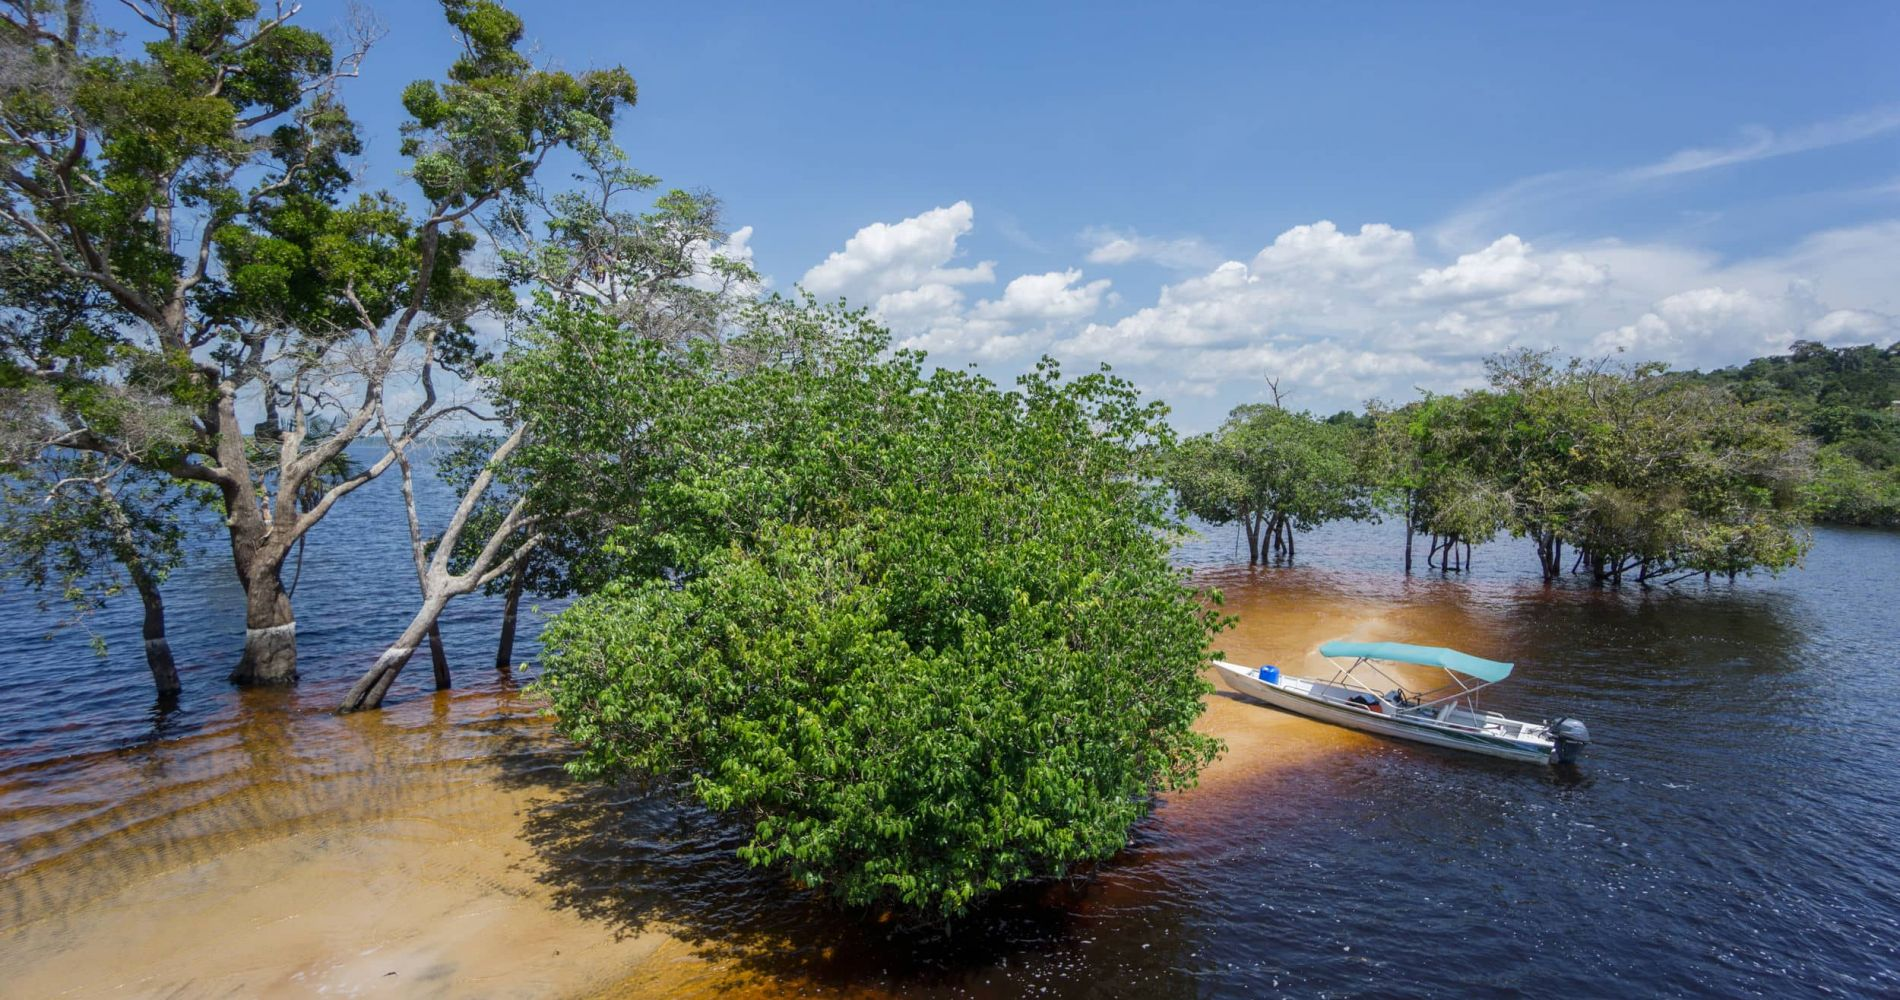 Full-Day Experience on the Amazon River in Brazil